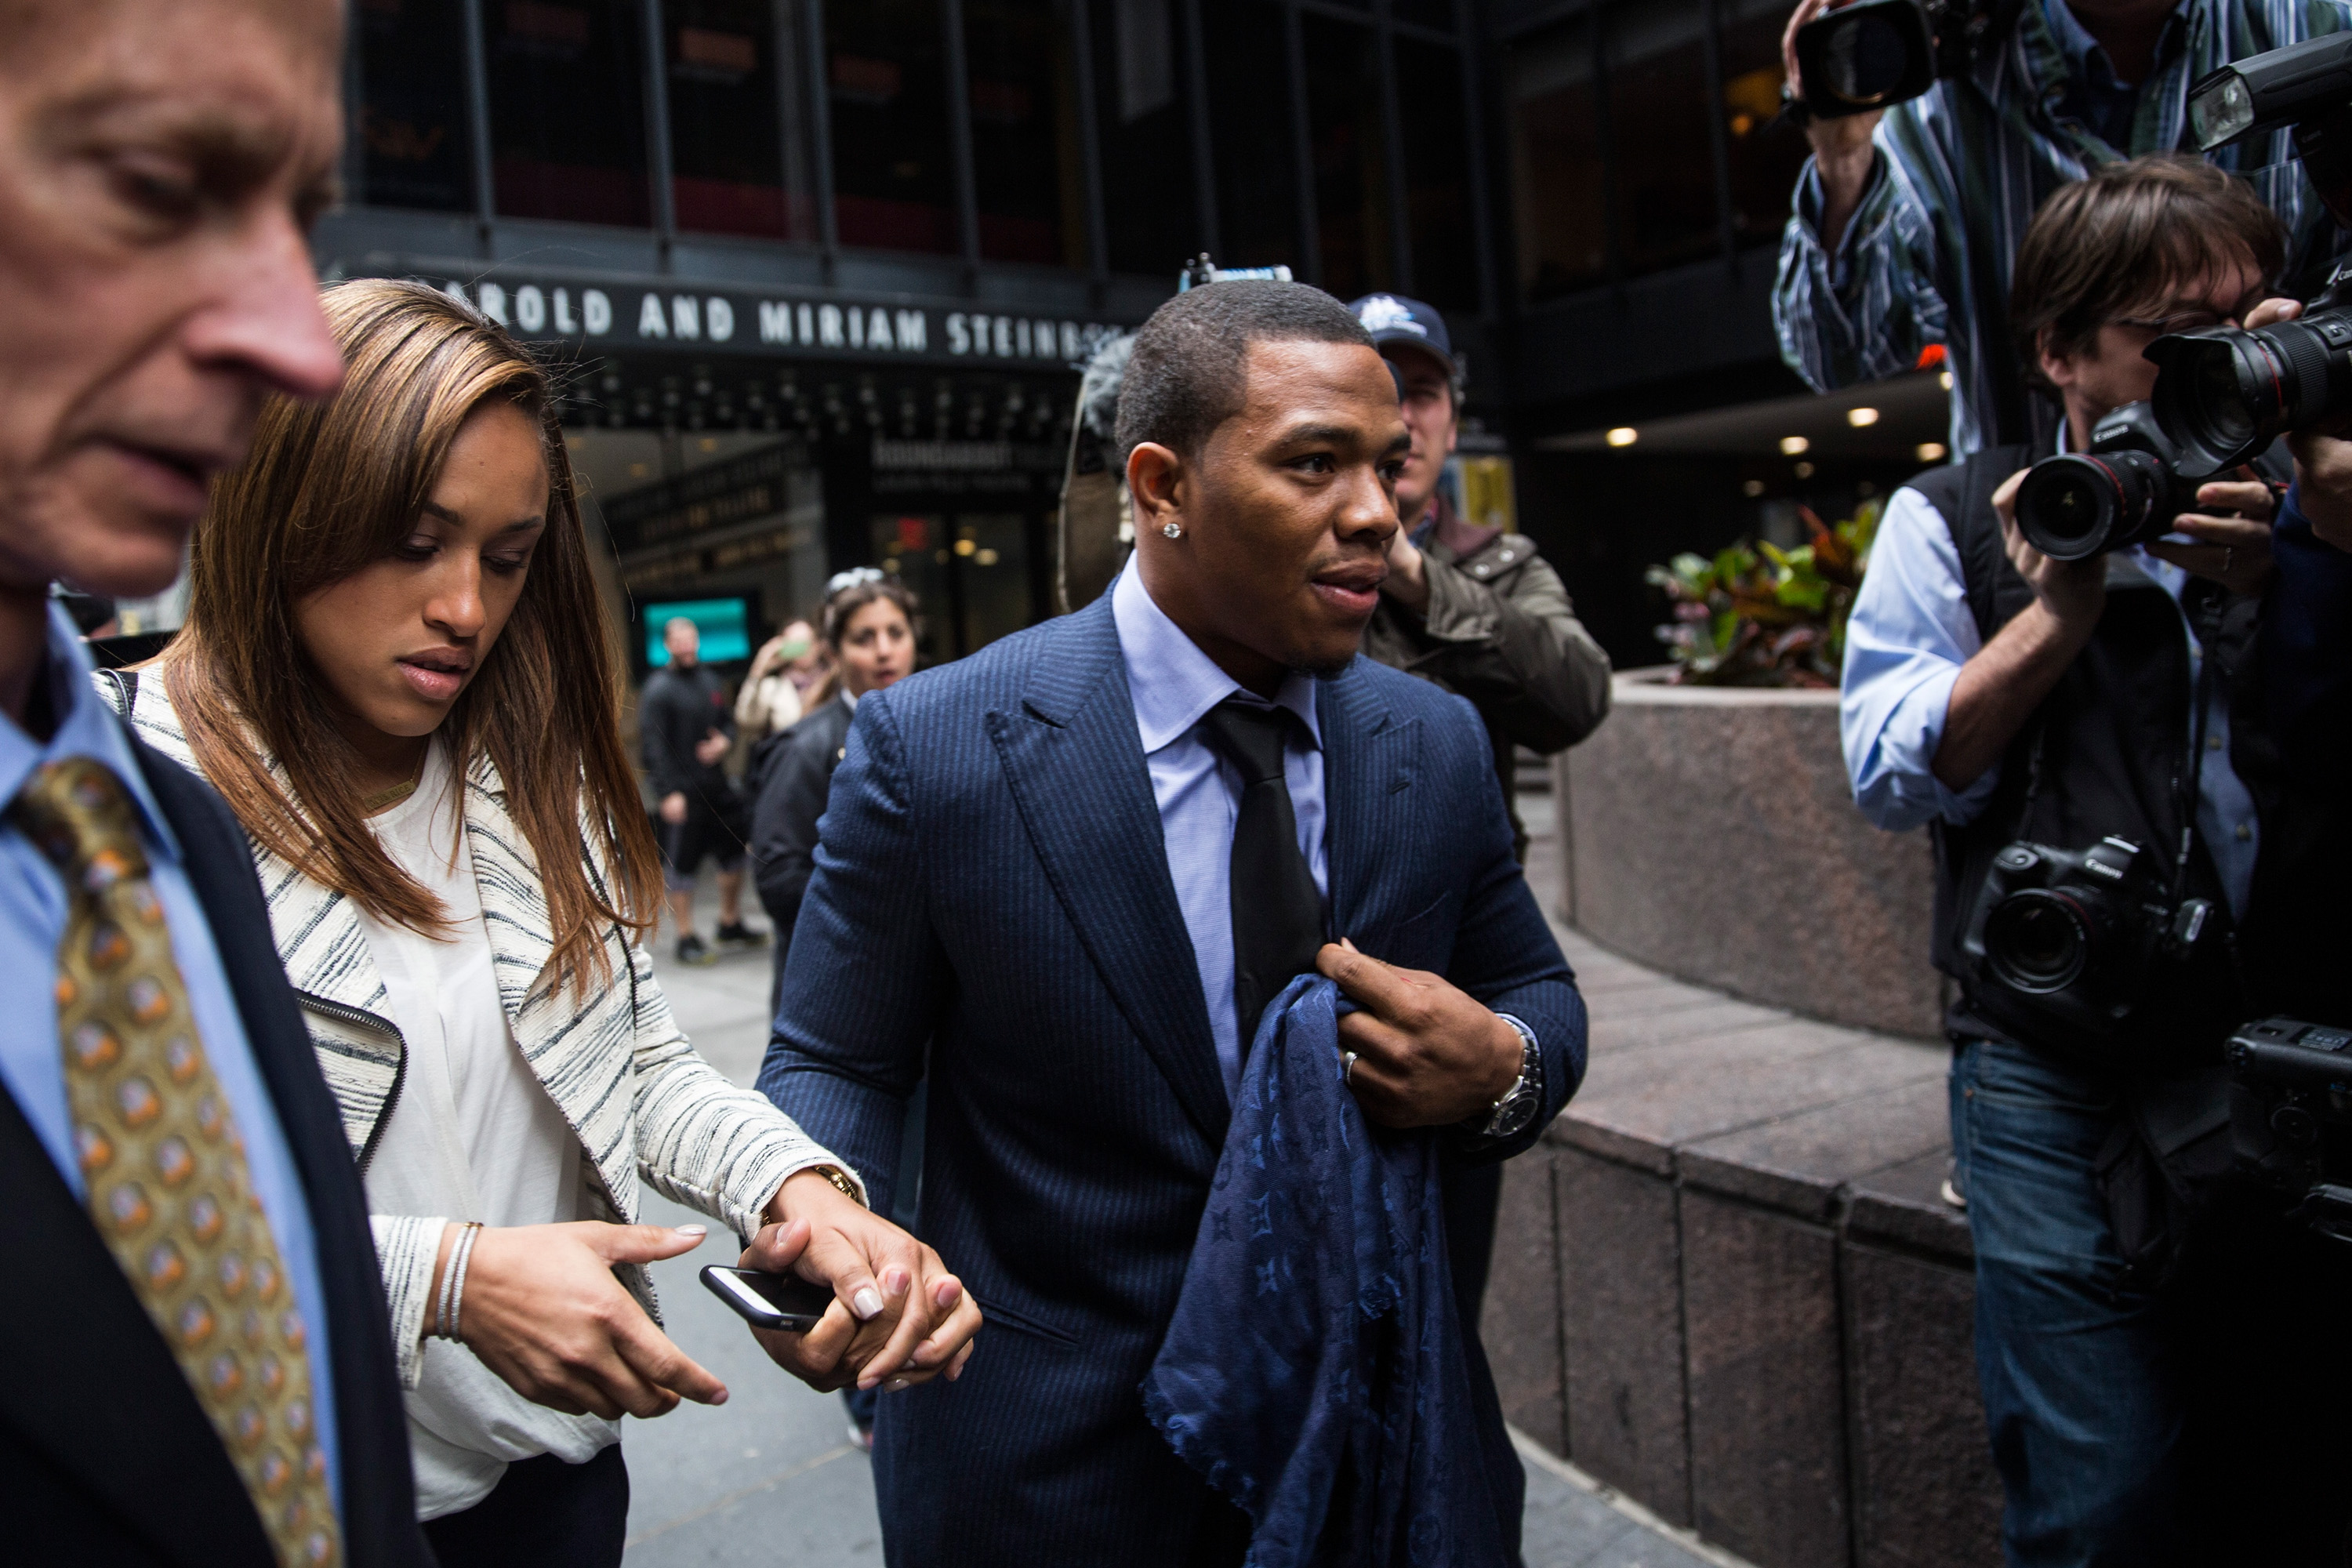 Suspended Baltimore Ravens football player Ray Rice and his wife Janay Palmer arrive for a hearing on Nov. 5, 2014 in New York City.